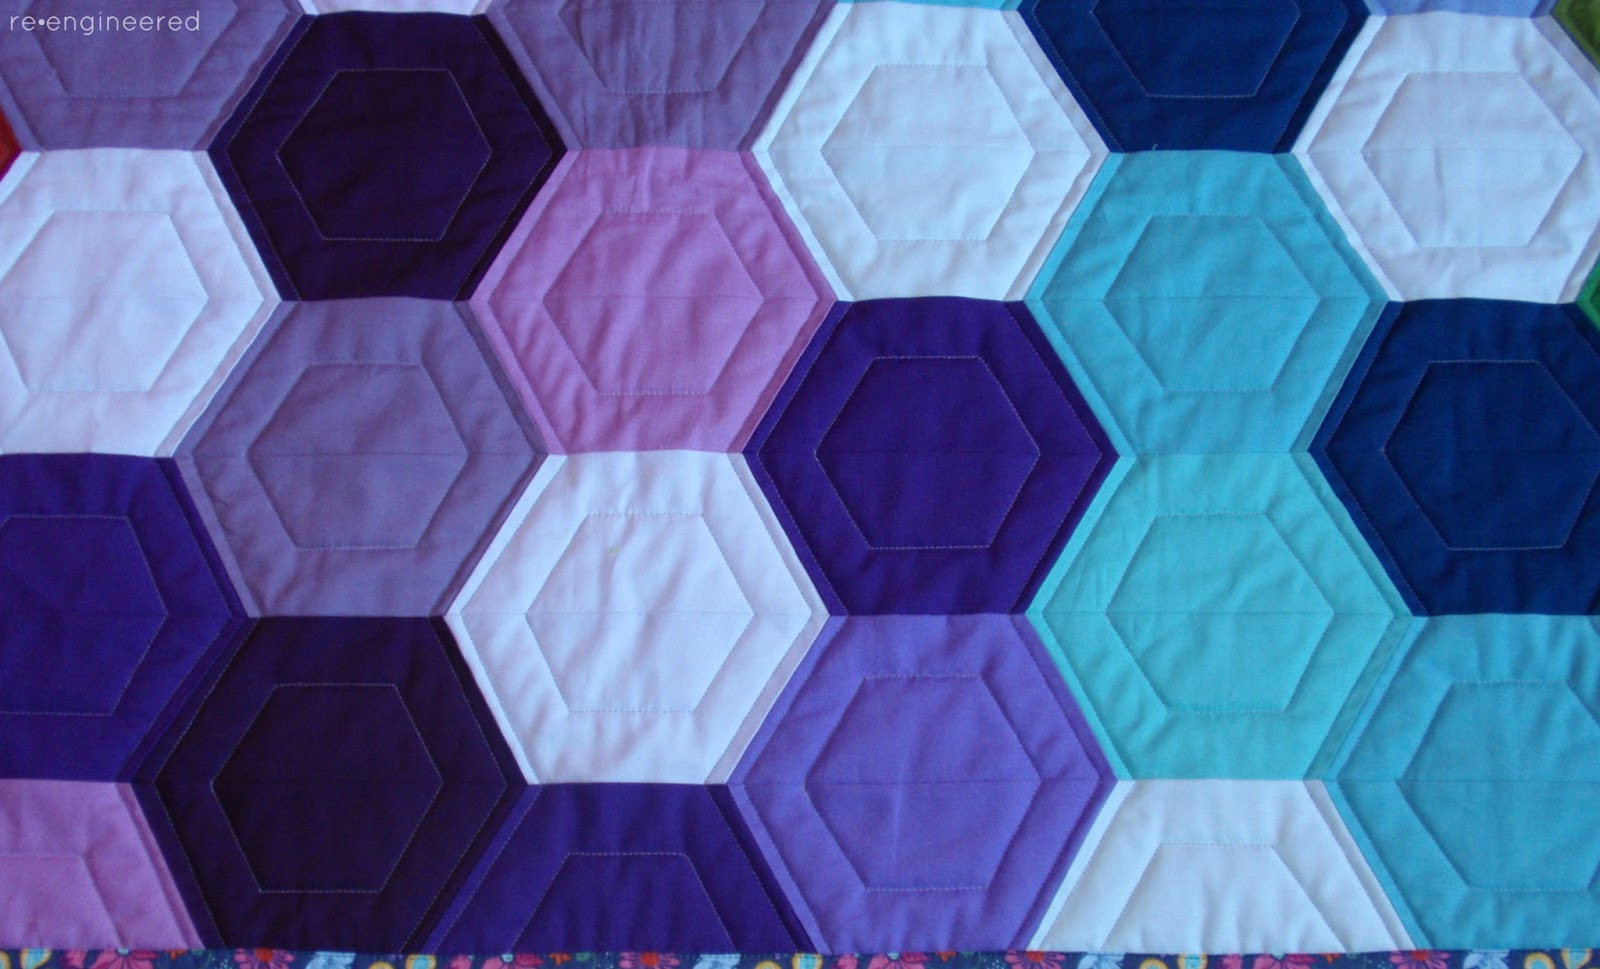 Quilting Templates Hexagon : re engineered: rainbow hexagon quilt : finished